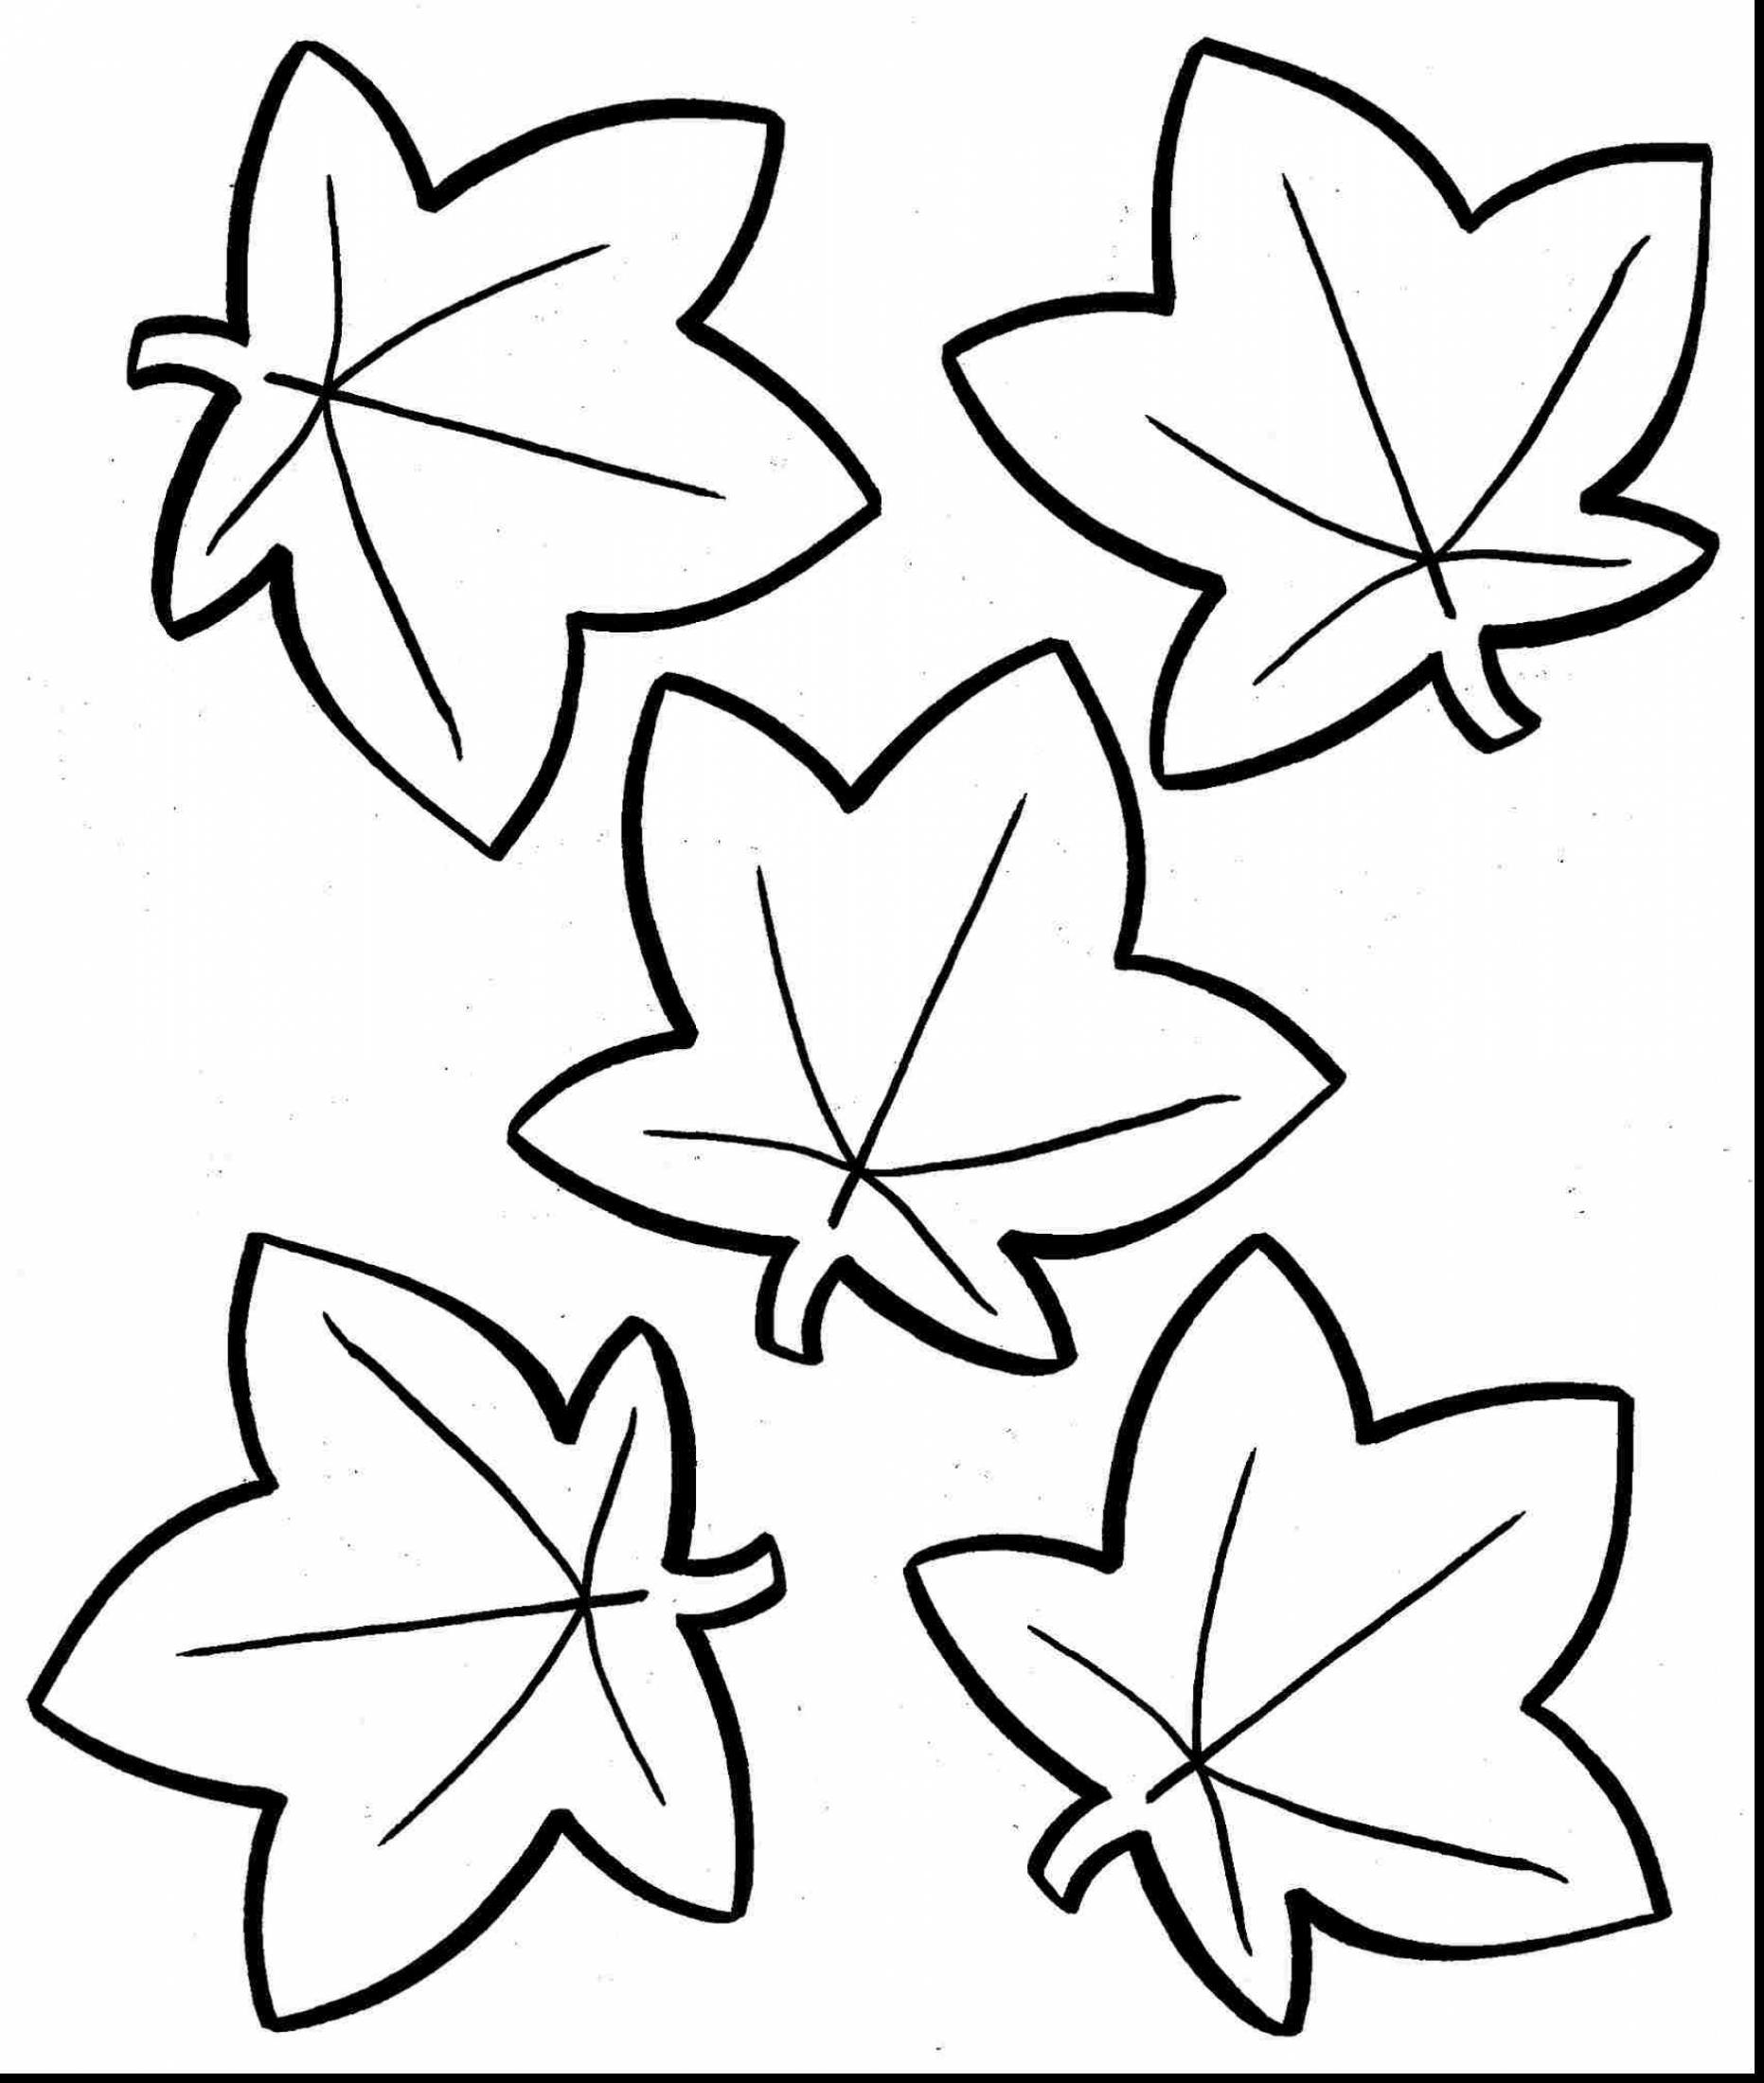 pumpkin and leaves coloring pages 21 awesome image of fall leaves coloring pages in 2020 and pages pumpkin leaves coloring